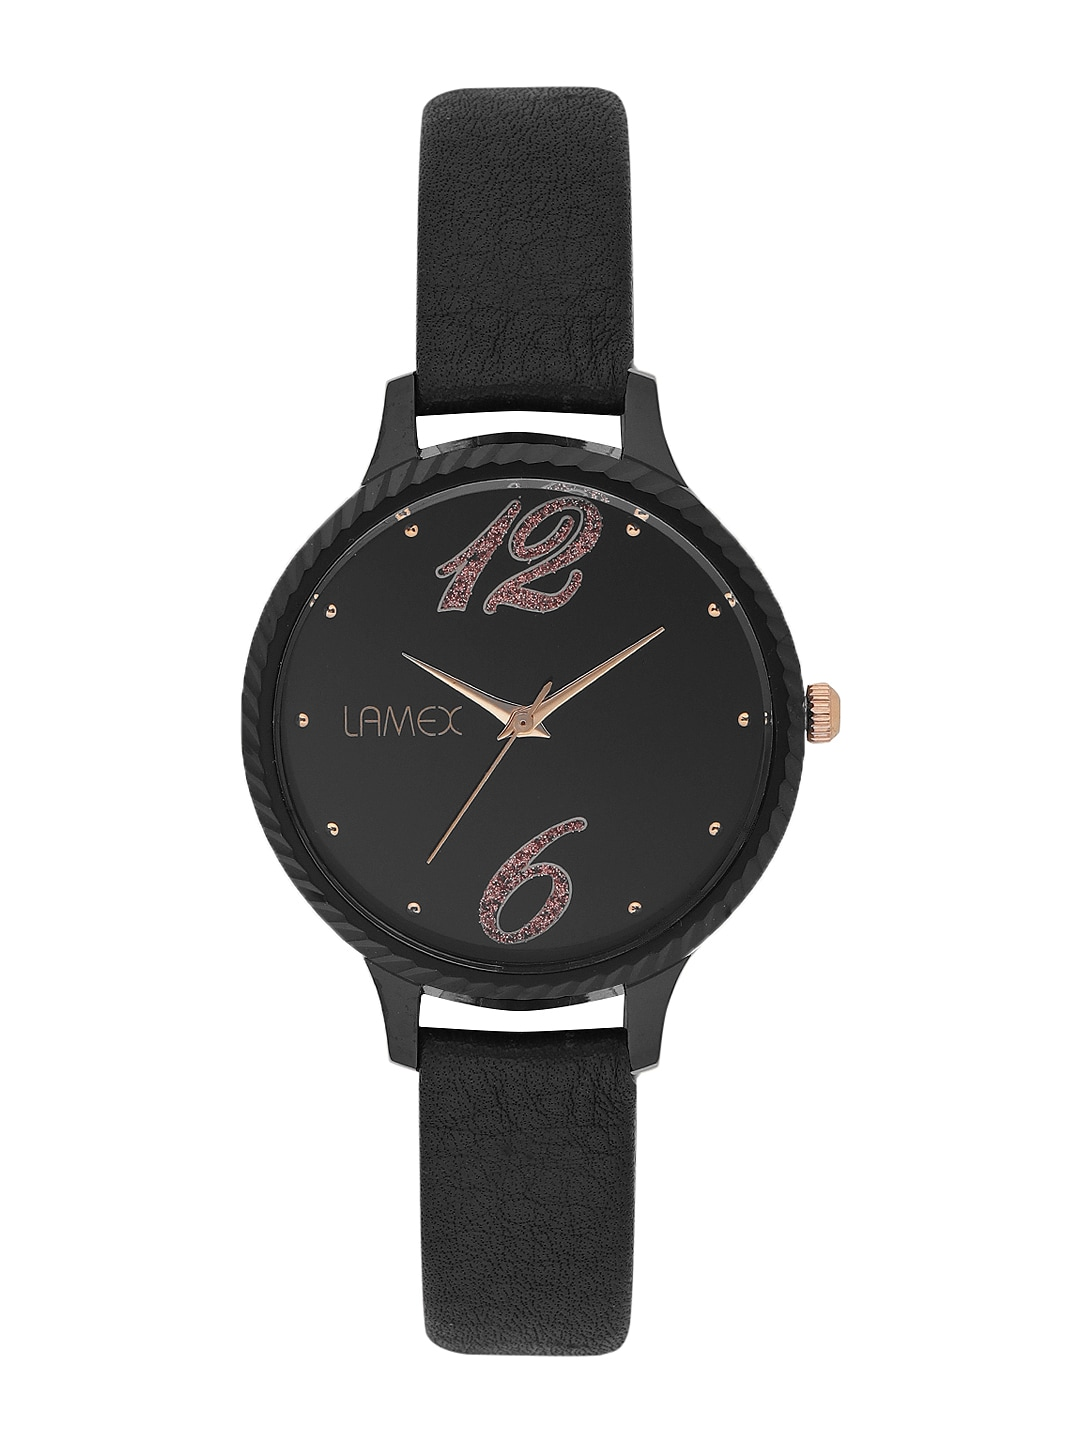 LAMEX Women Black Analogue Watch INNOVADLX 4062 image